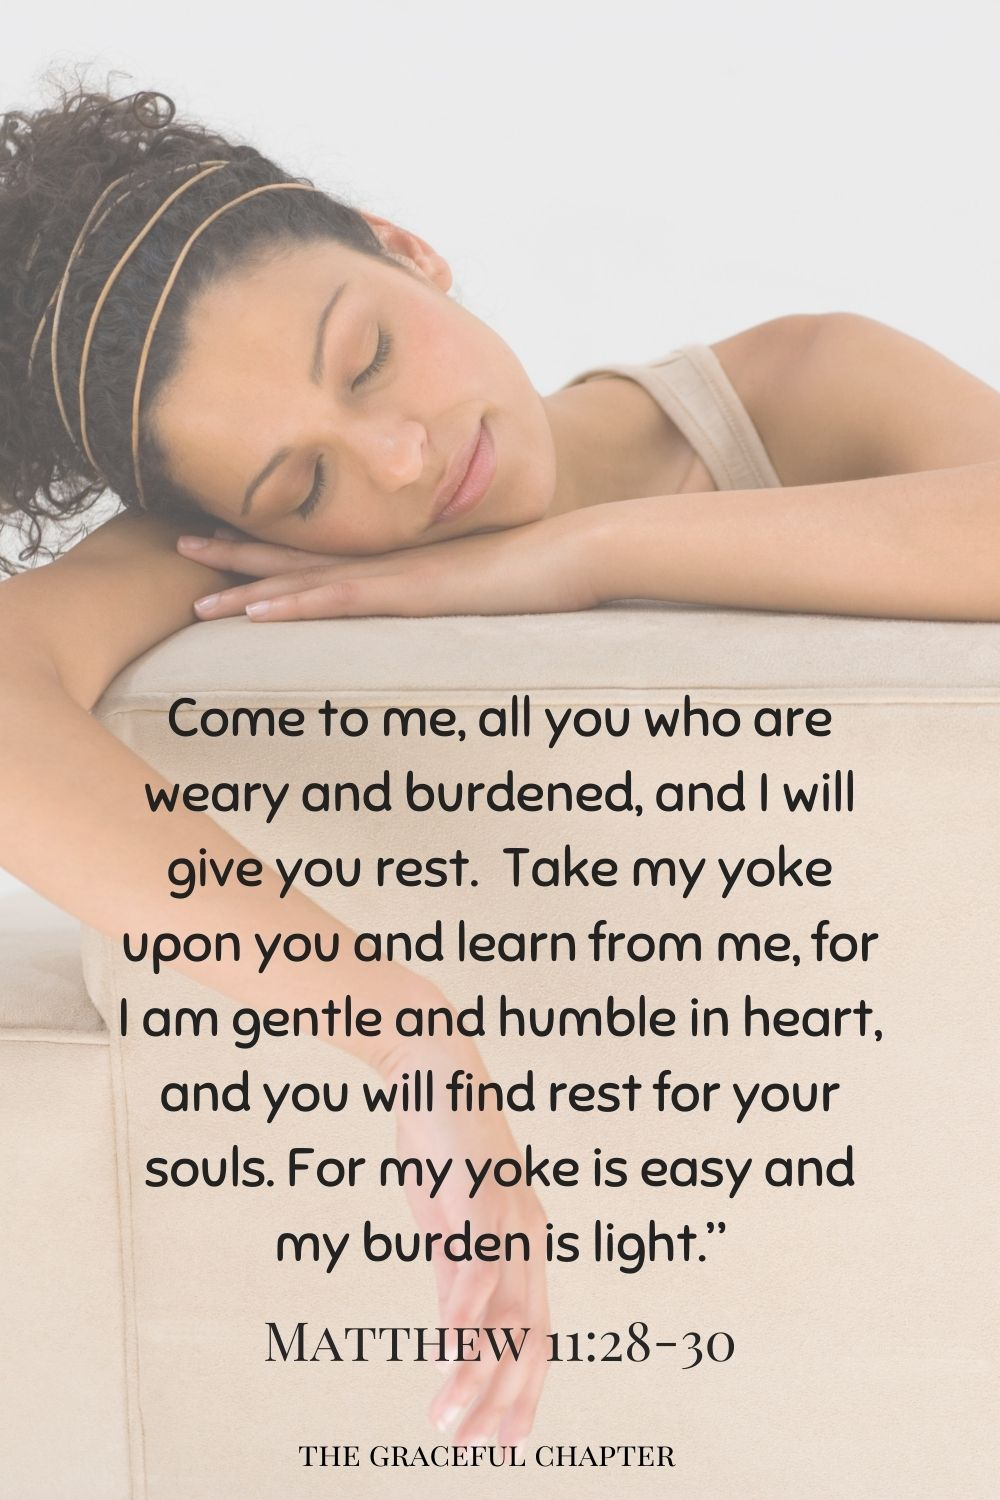 """comforting bedtime bible verses - Come to me, all you who are weary and burdened, and I will give you rest. Take my yoke upon you and learn from me, for I am gentle and humble in heart, and you will find rest for your souls. For my yoke is easy and my burden is light."""" Matthew 11:28-30"""